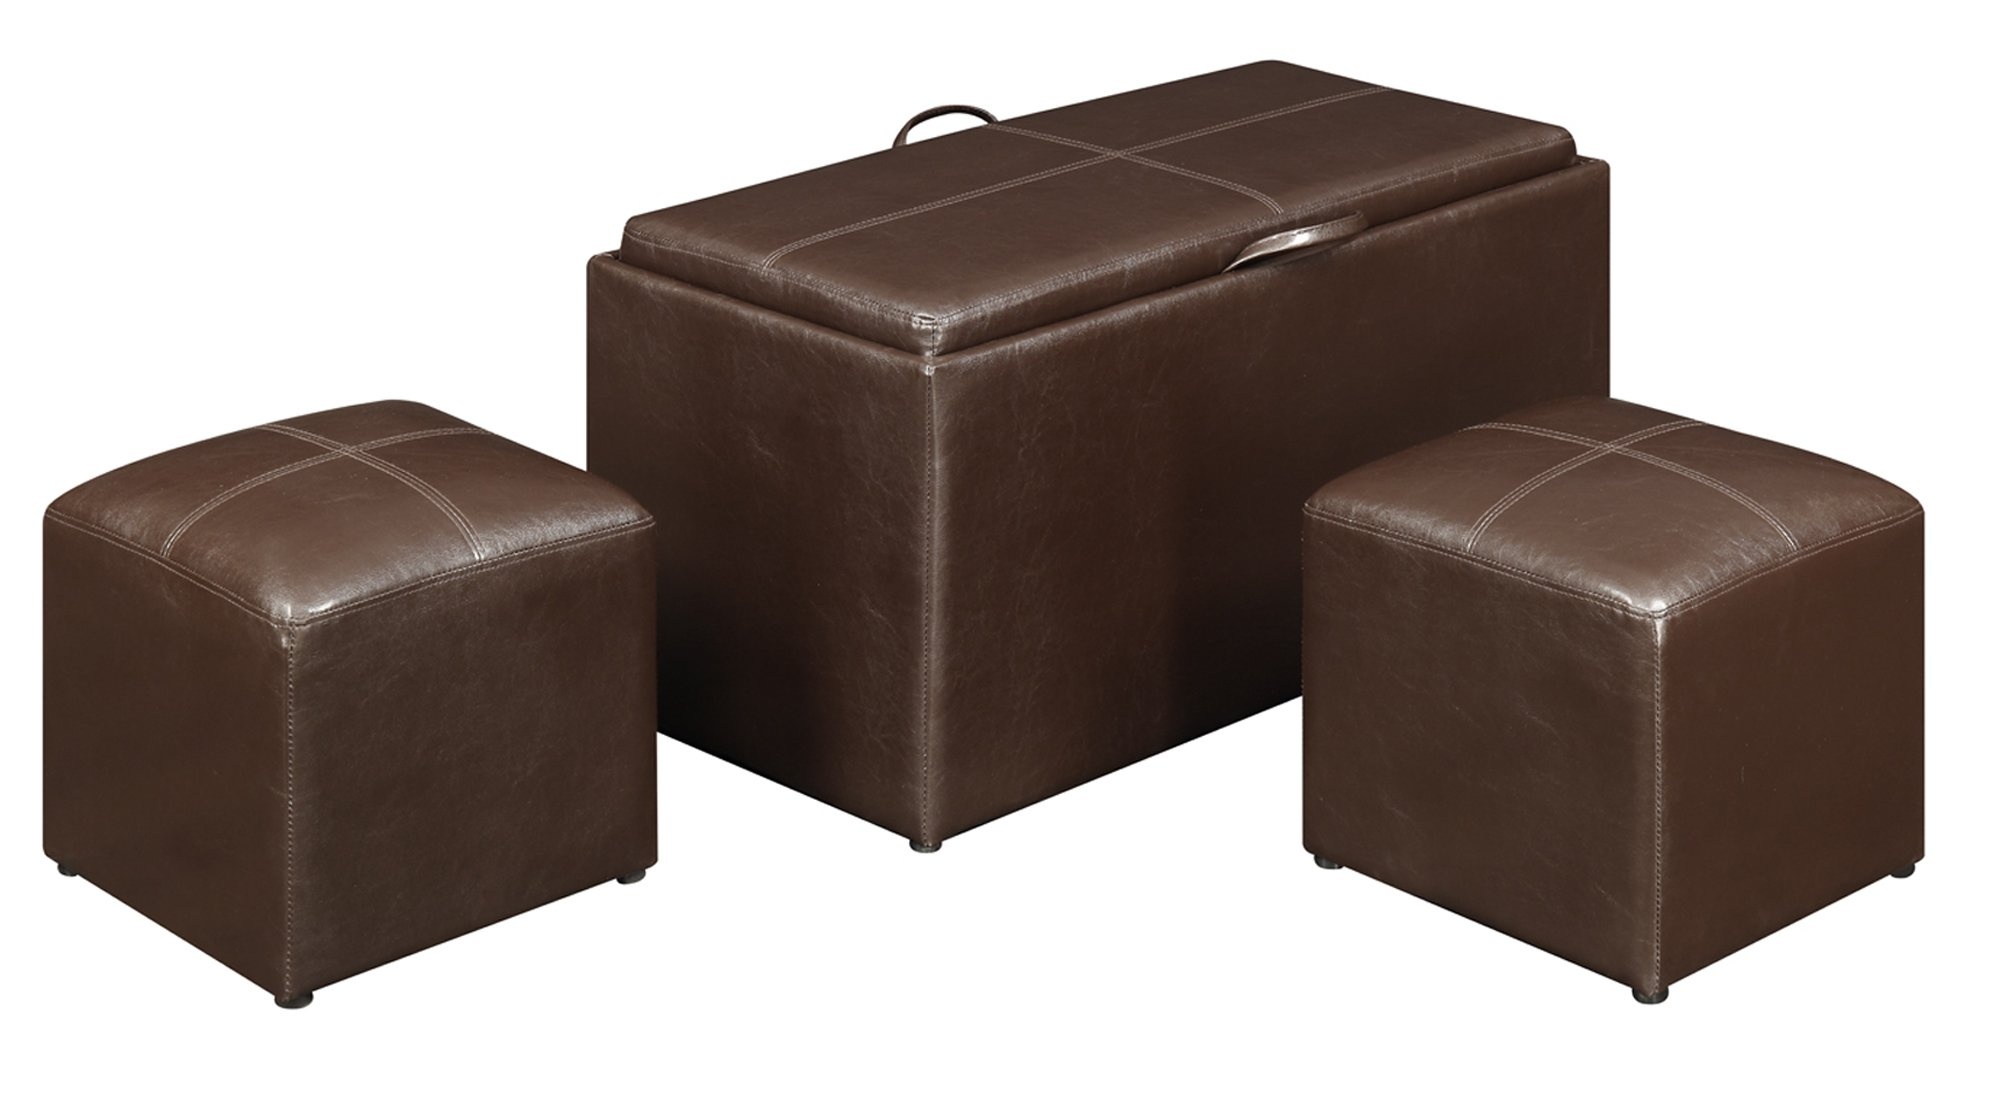 Convenience Concepts 143012 Sheridan Faux Leather Storage Bench with 2 Side Ottomans, Dark Espresso by Convenience Concepts